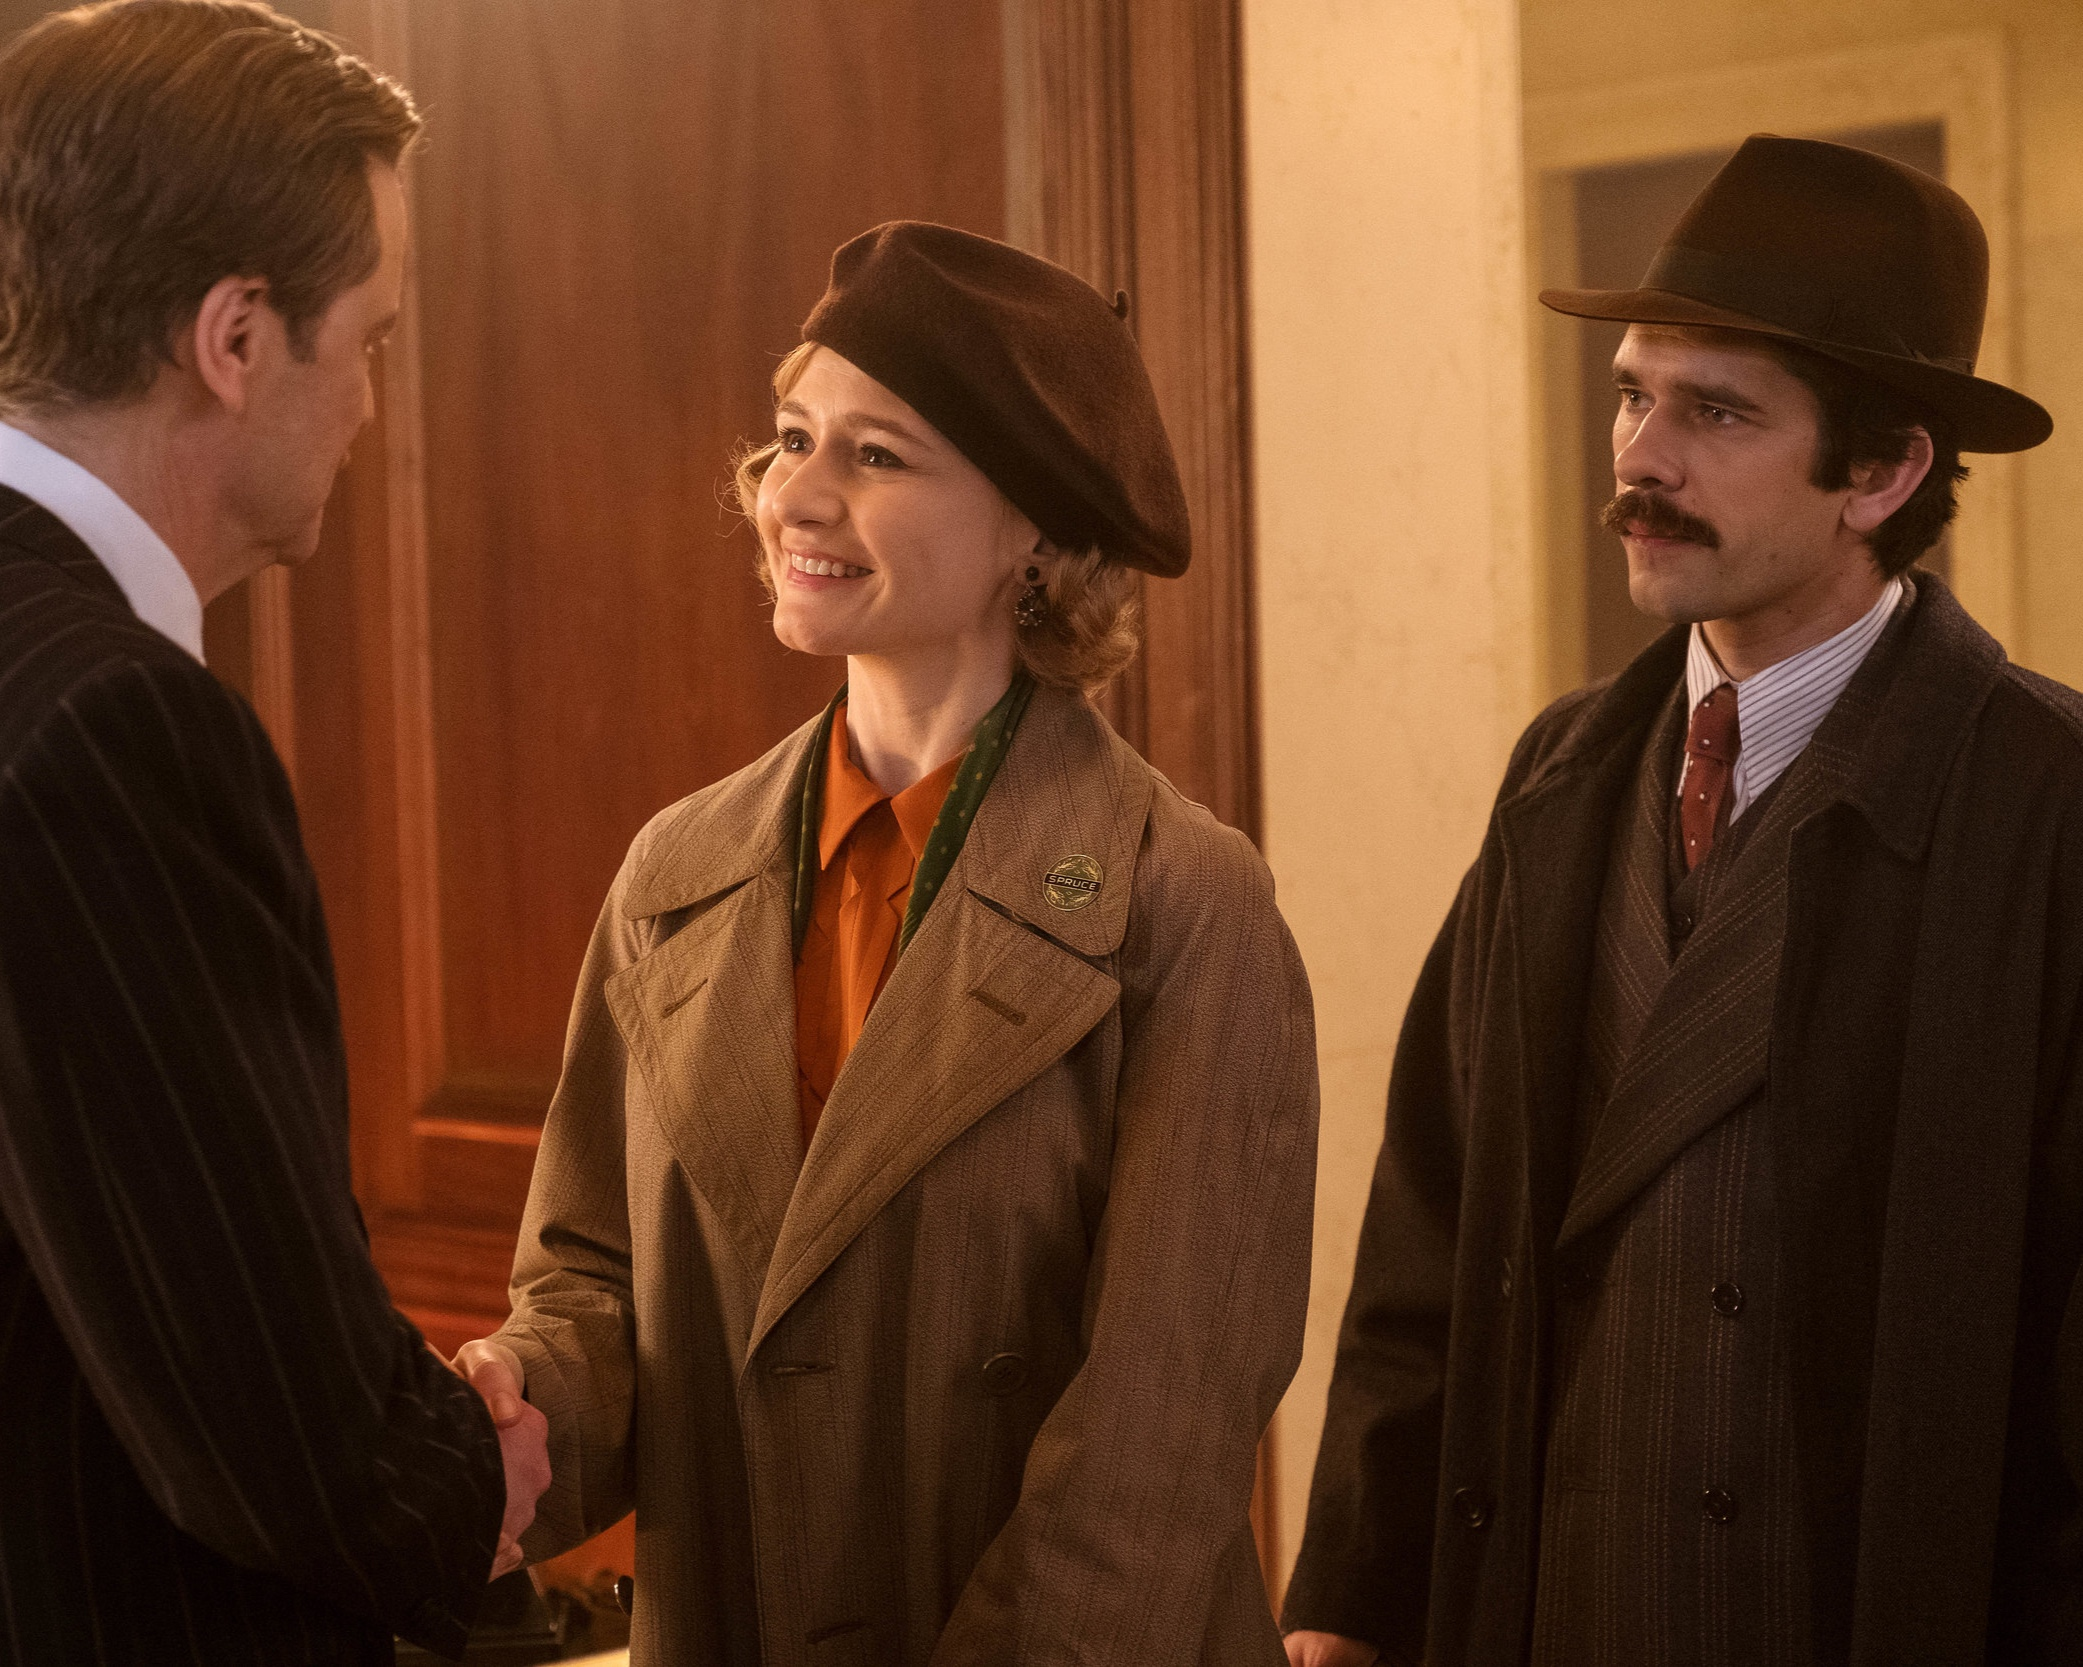 Grown up Jane (Mortimer) & Michael (Whishaw) Banks with banker Wilkins (Firth).